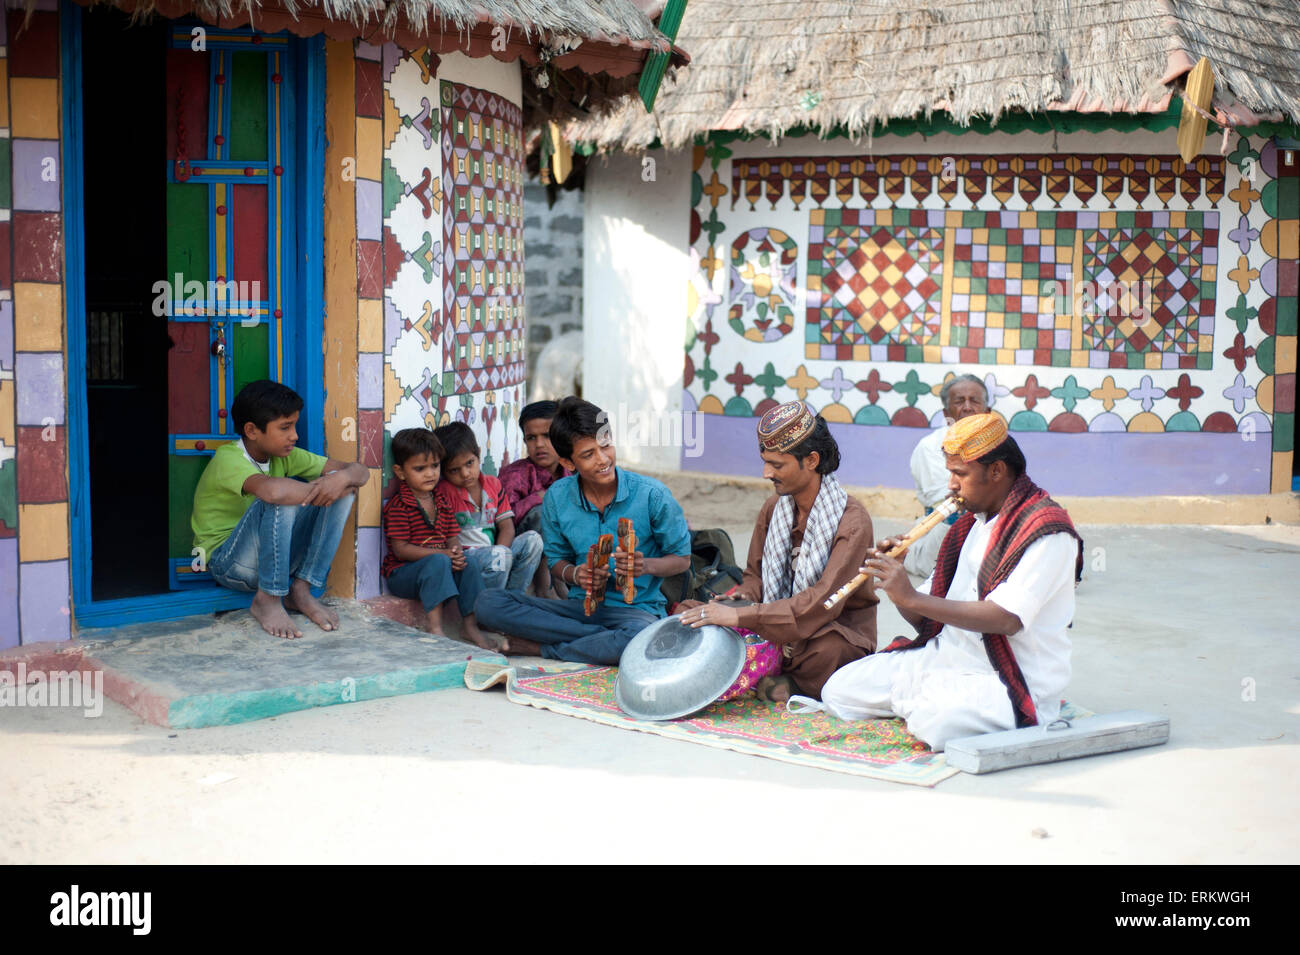 Village musicians, instruments made from metal bowl and terracotta water pot, Bhirindiara, Kachchh, Gujarat, India - Stock Image